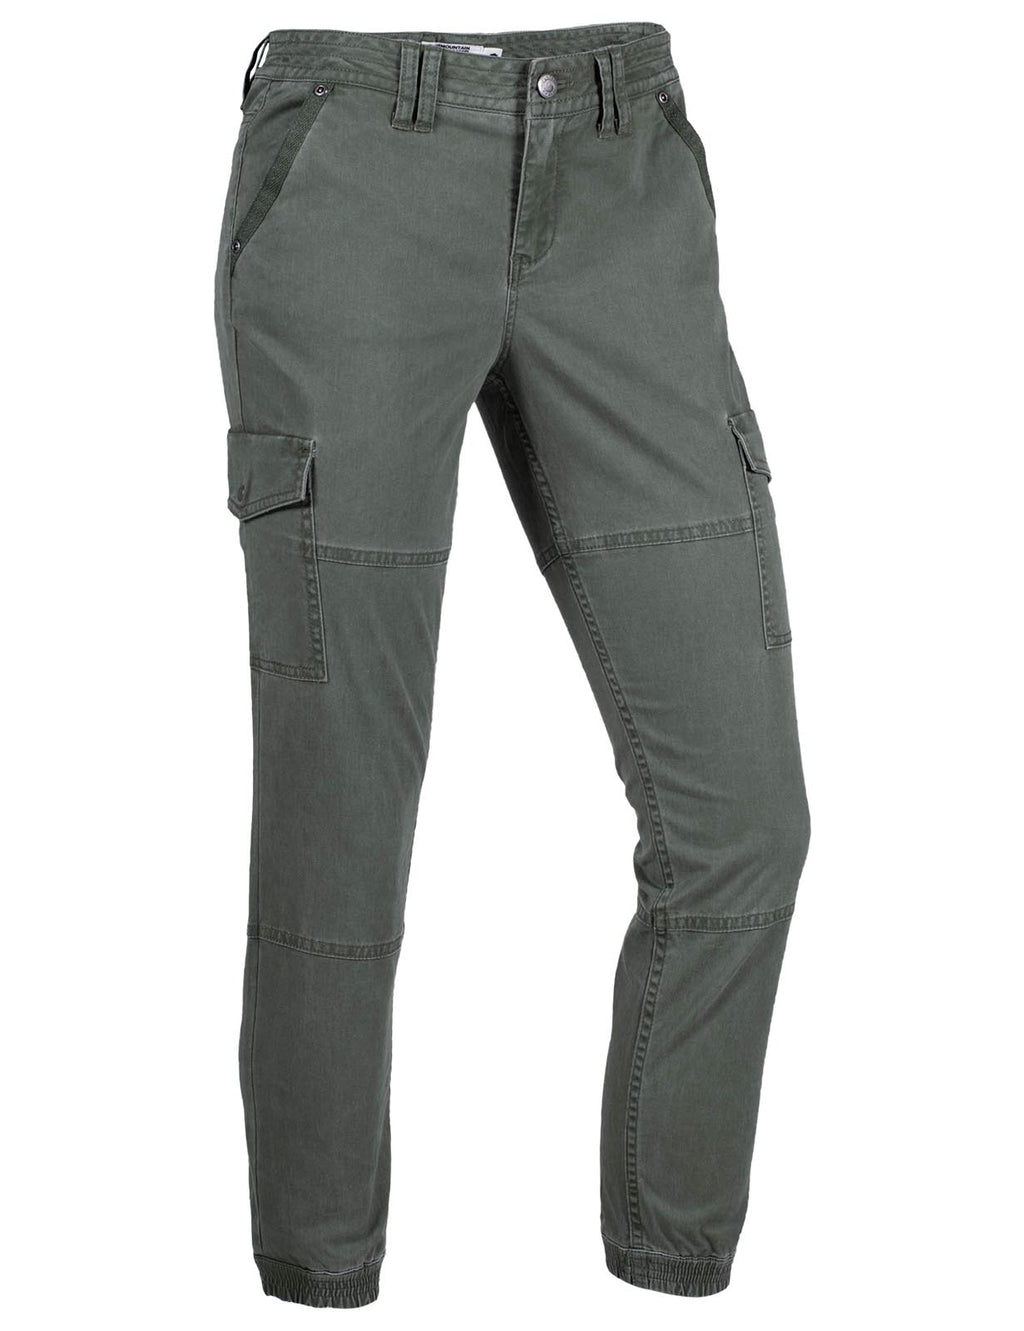 Women's Calamity Cargo Pant | Mountain Khakis. Women's hiking and outdoor lifestyle pants with cargo pockets and ribbed ankle cuff in olive green color.